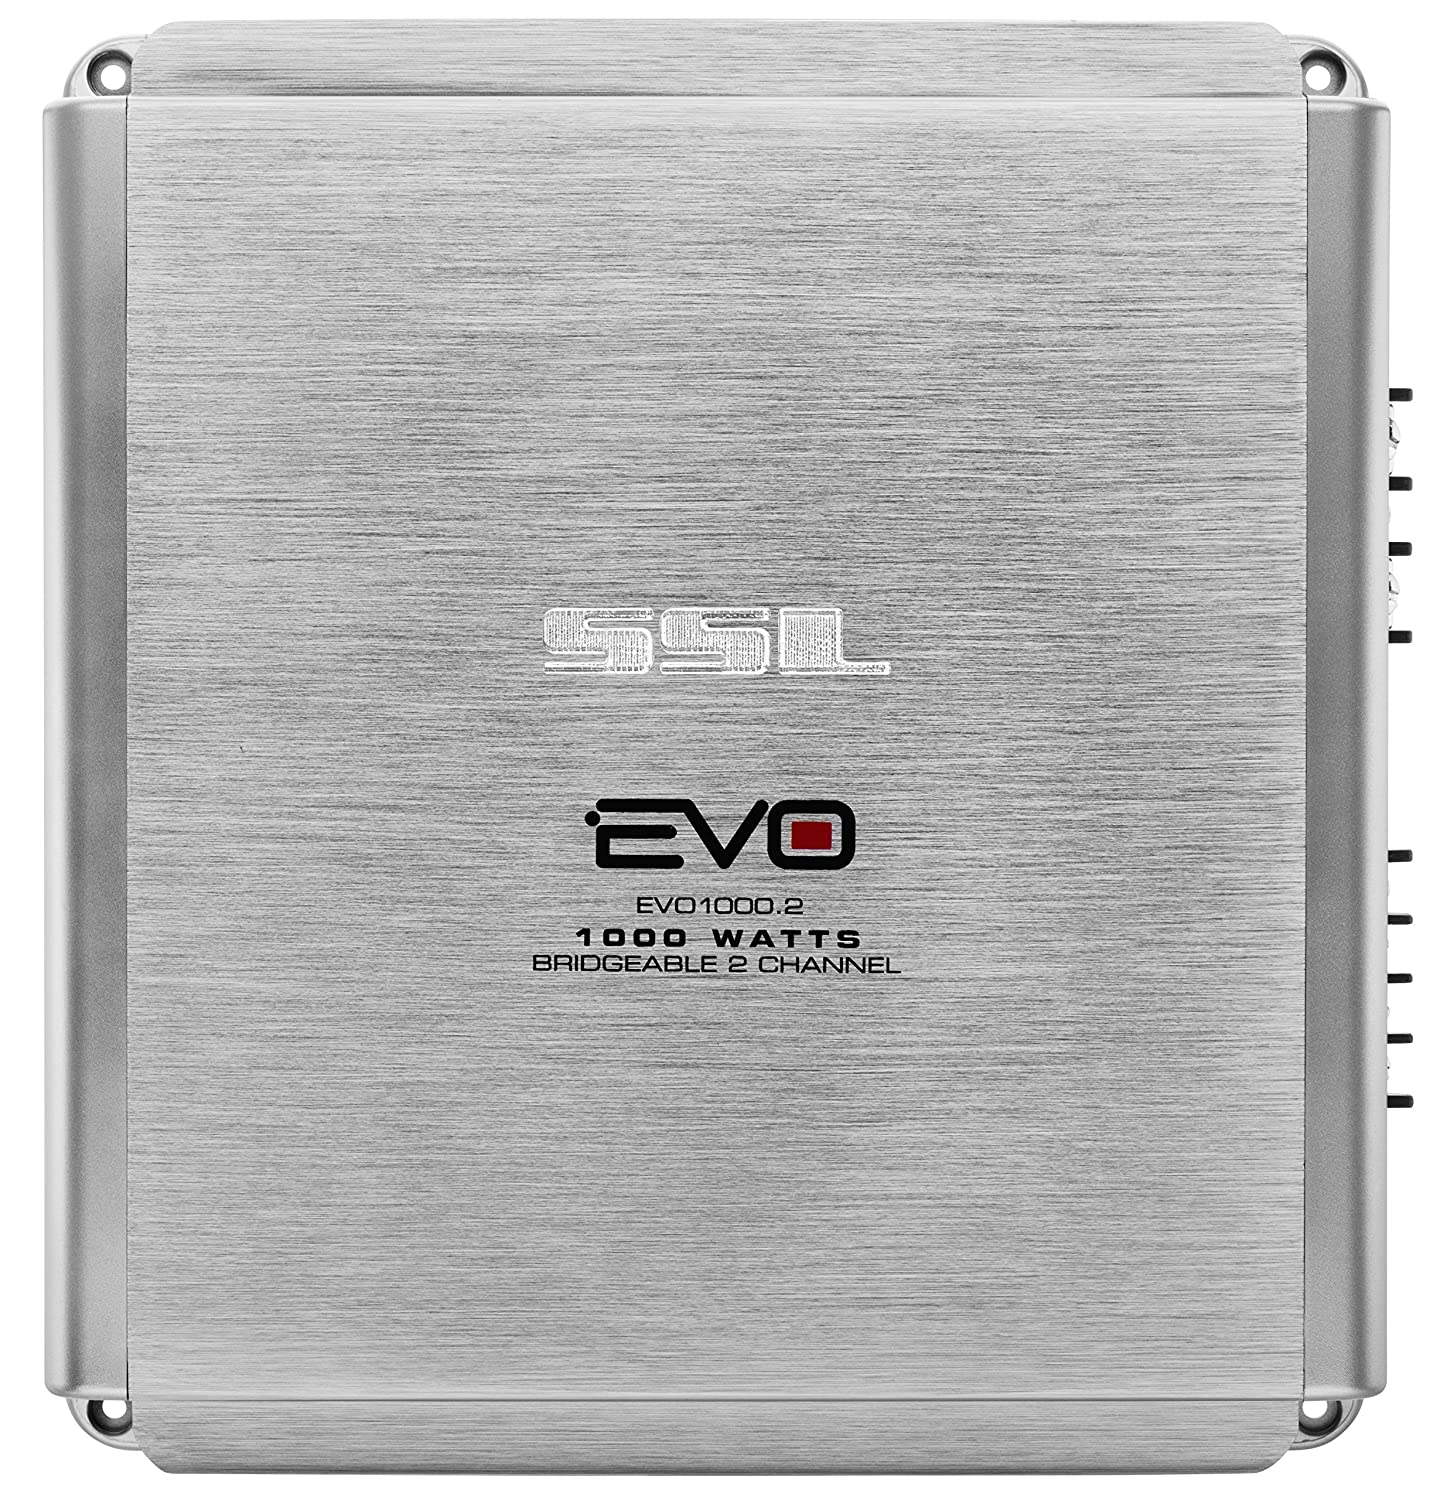 Sound Storm Evo10002 Evo 1000 Watt 2 Channel To 8 75w Transistor Audio Amplifier Ohm Stable Class A B Full Range Bridgeable Mosfet Car With Remote Subwoofer